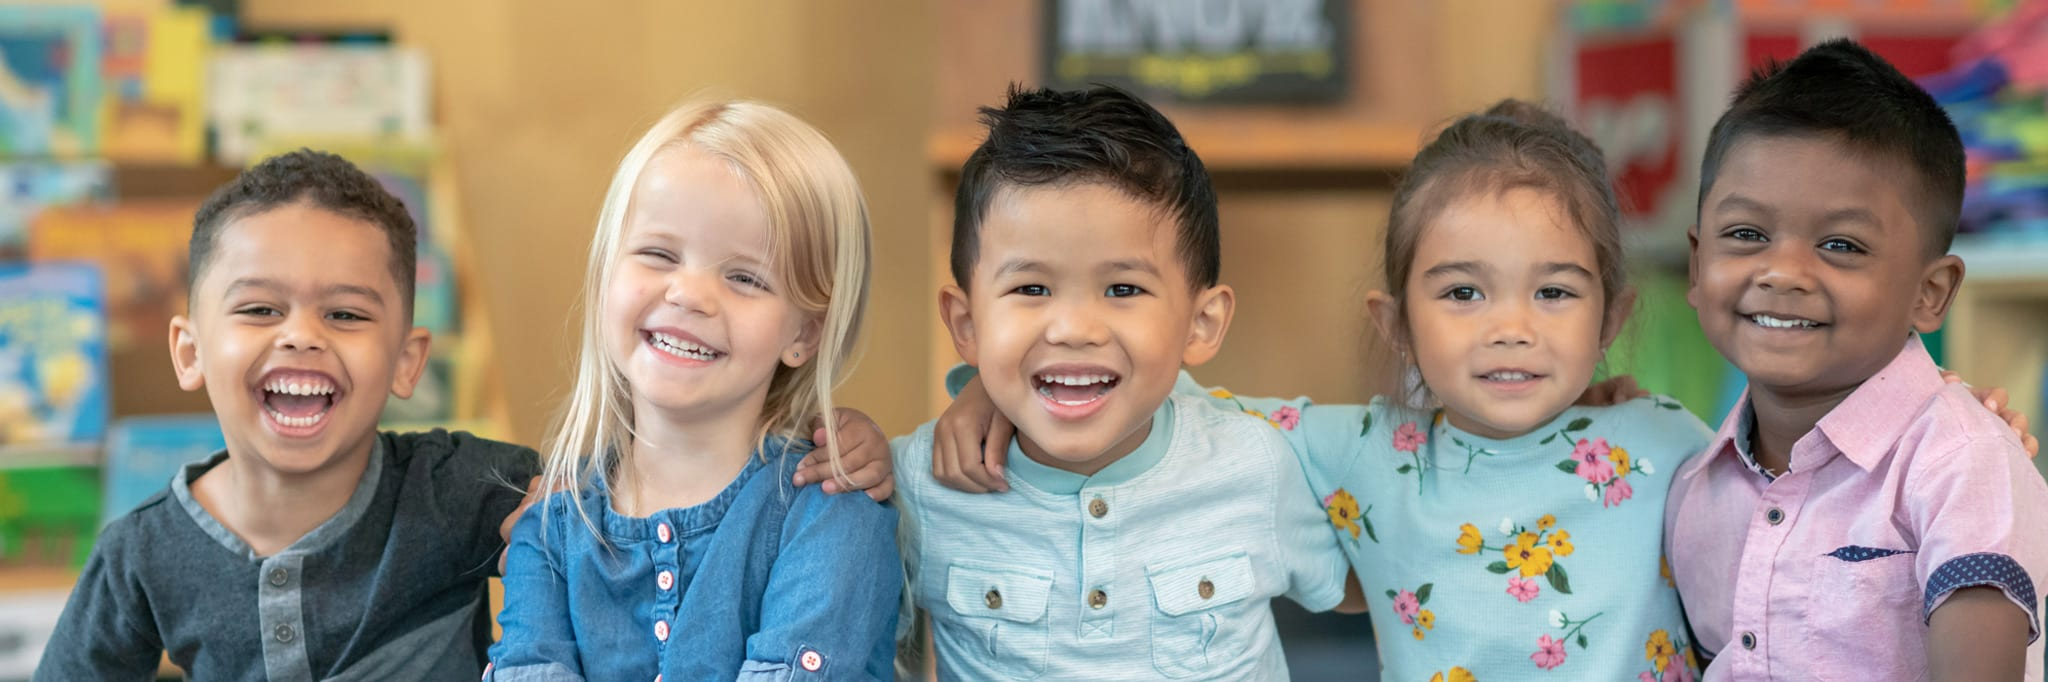 school acquisitions, preschoolers smiling side by side